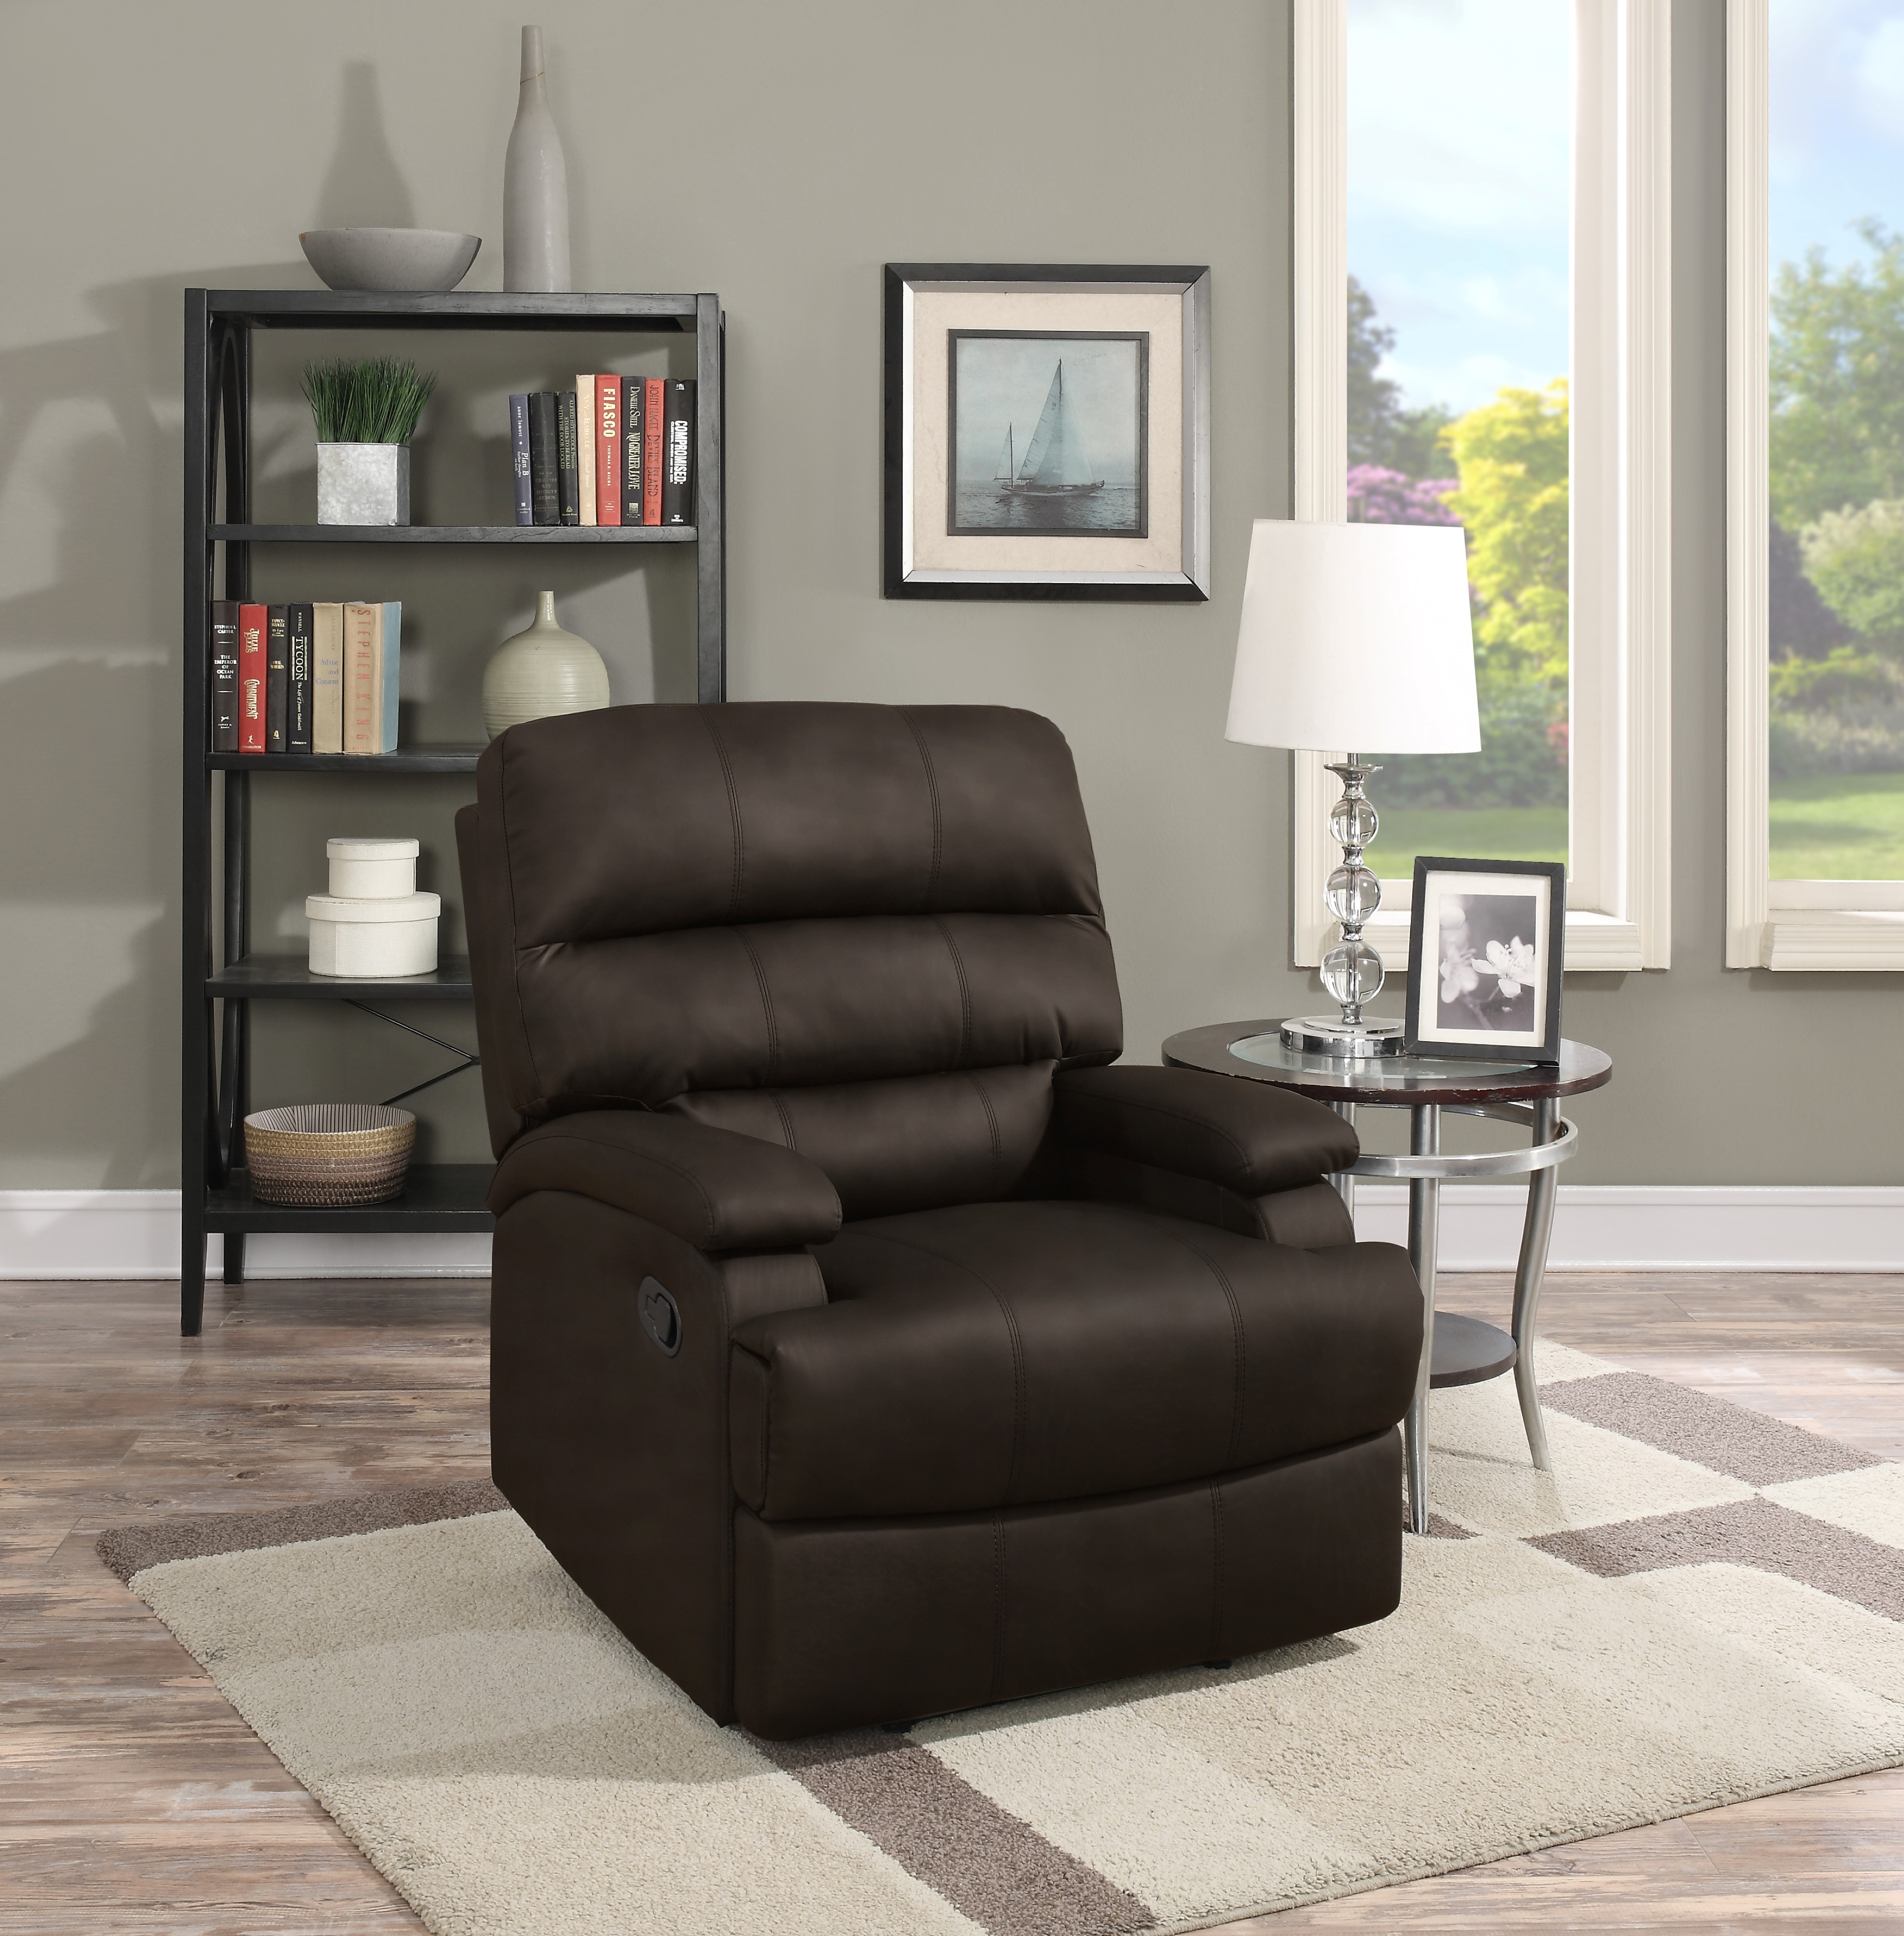 Rory 2 – Lifestyle Solutions Regarding Rory Sofa Chairs (Image 10 of 20)